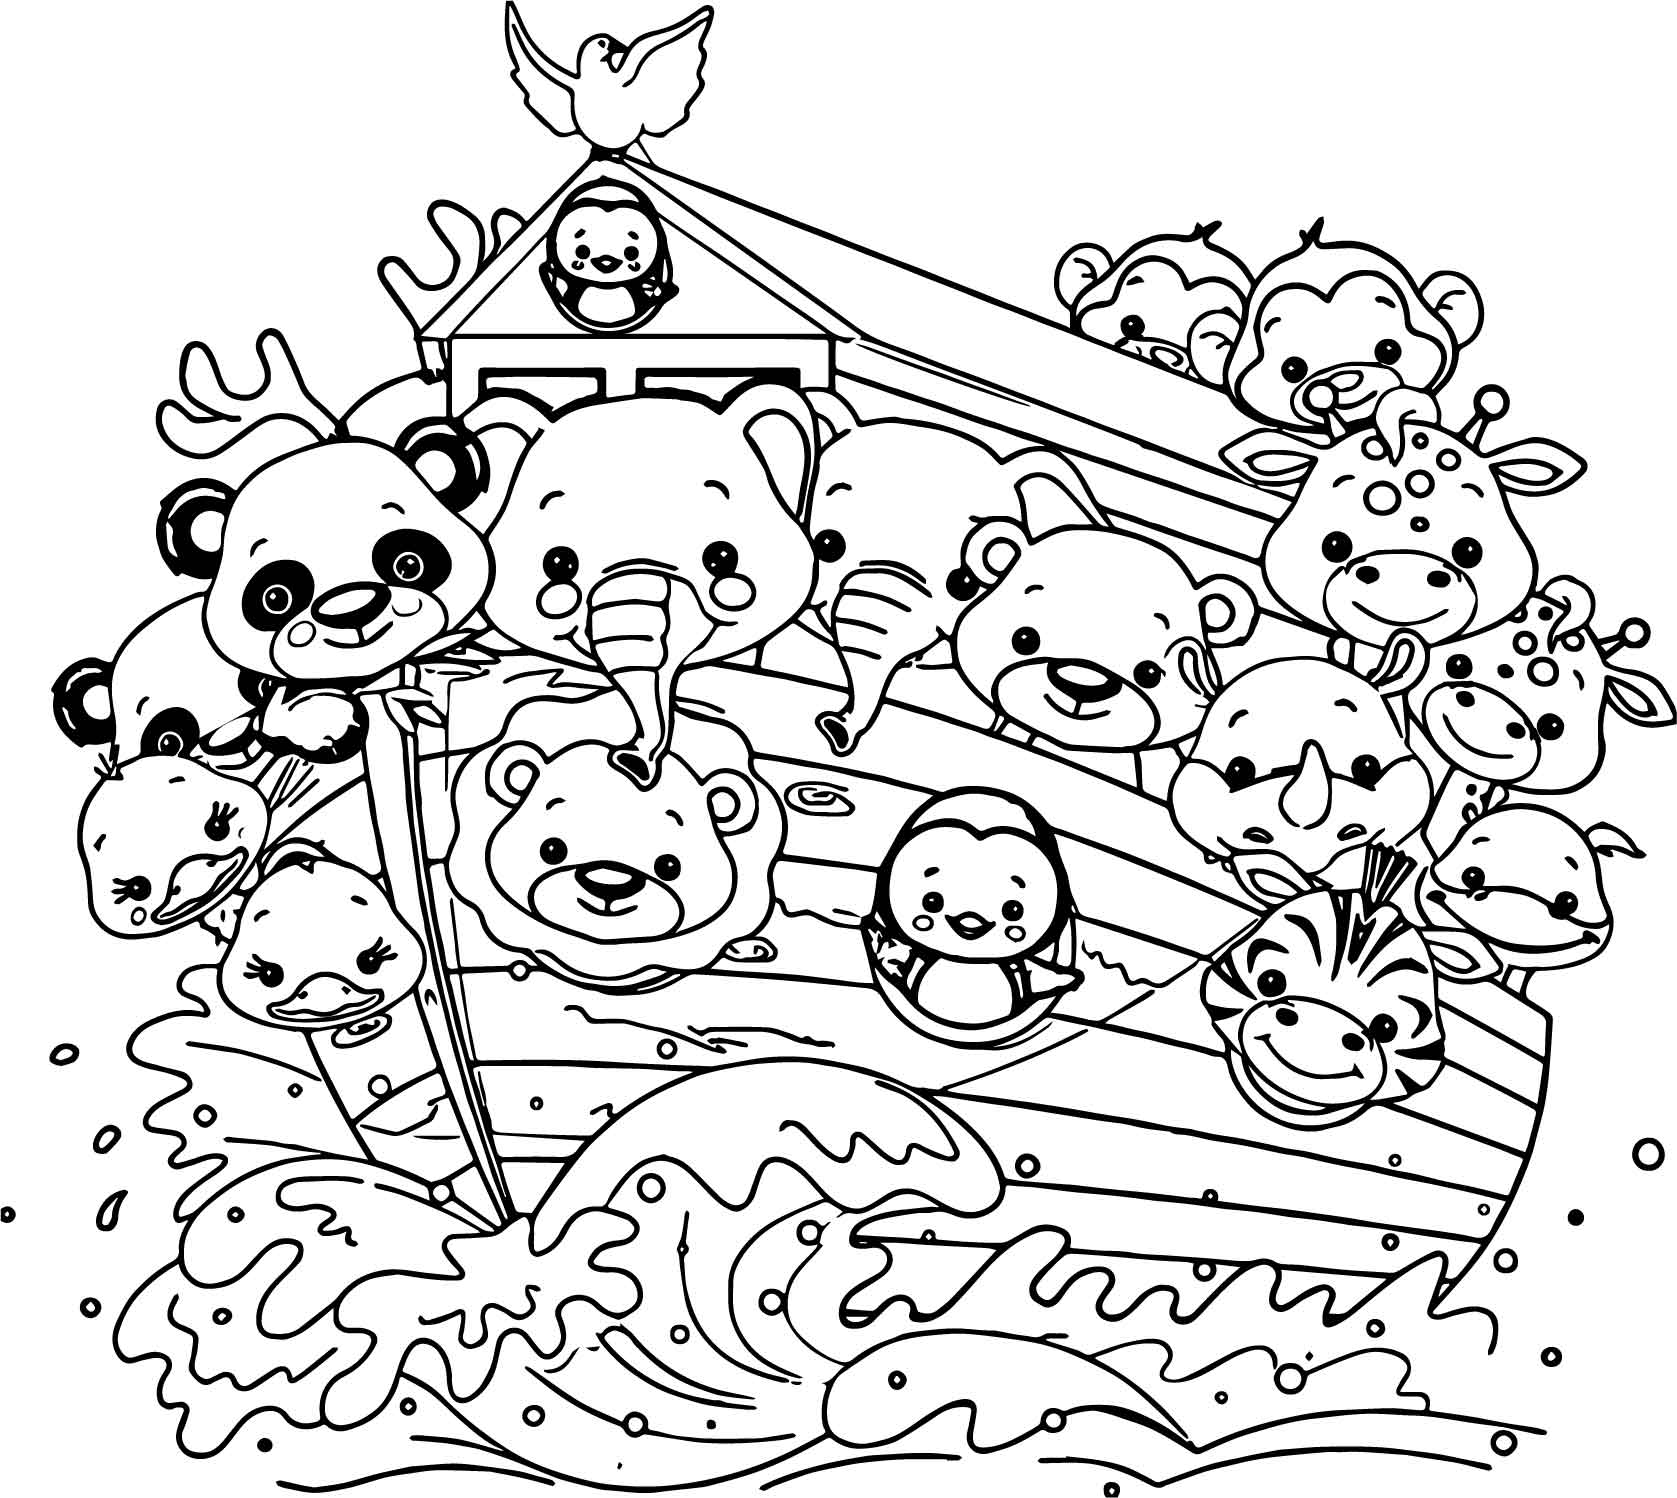 noah s ark coloring page - noah ship cartoon coloring page